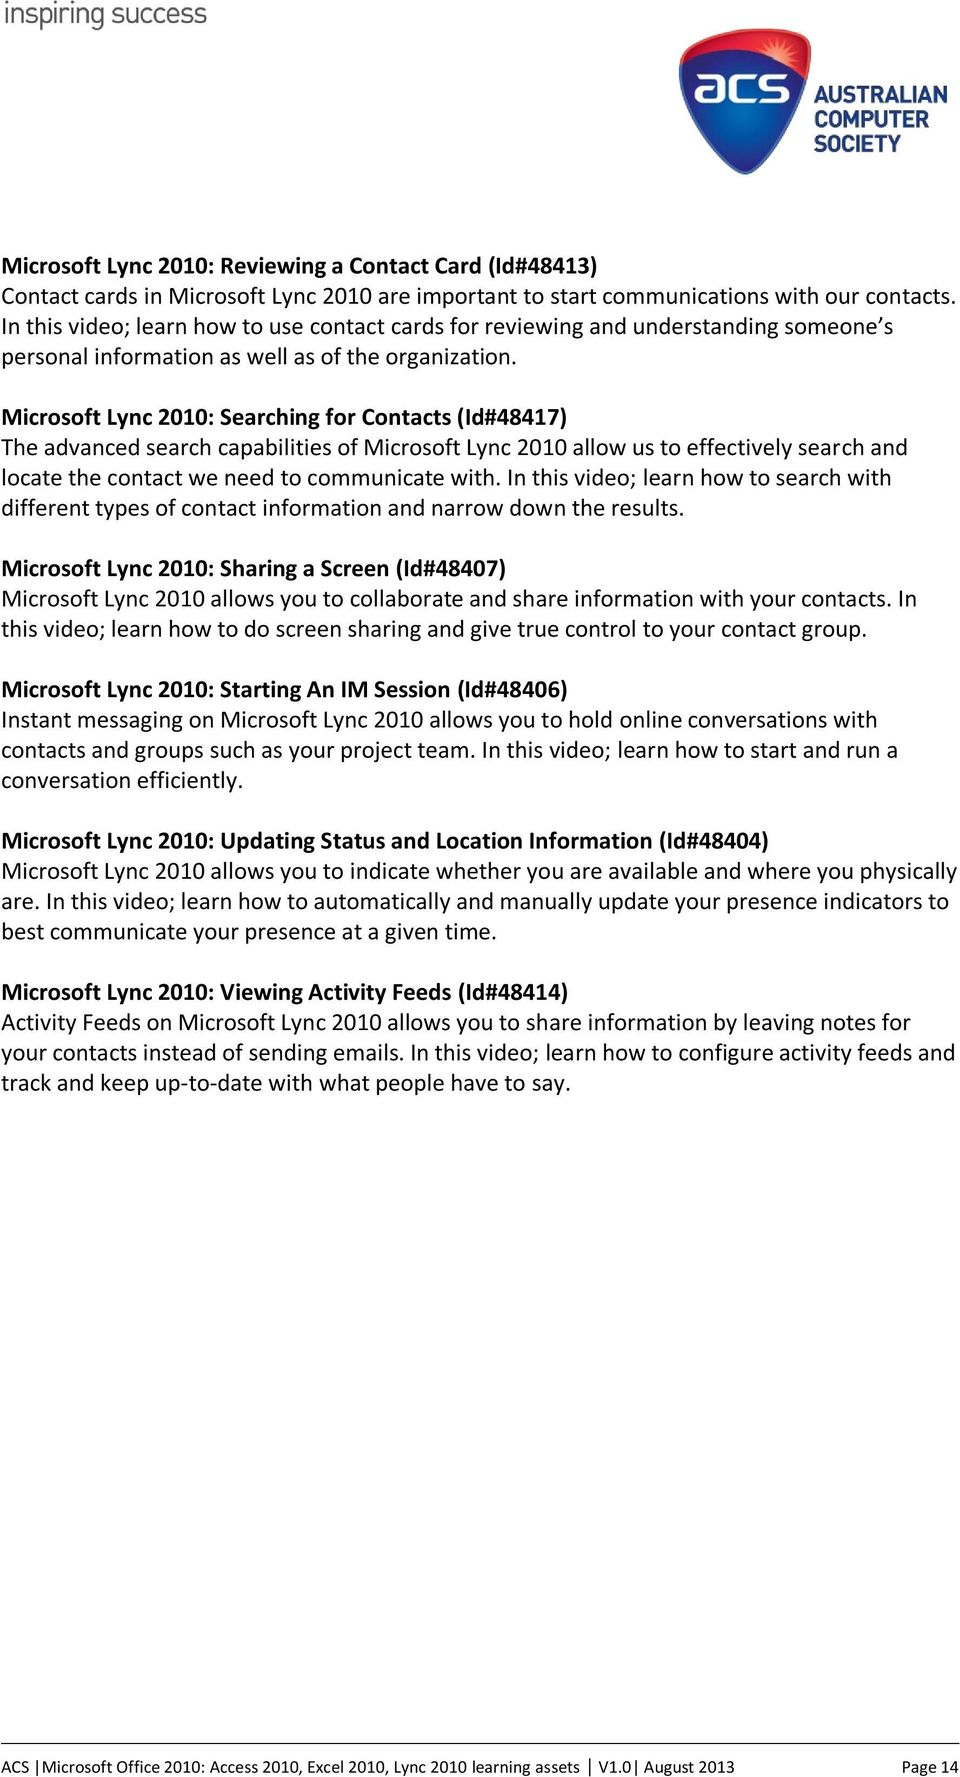 Microsoft Lync 2010: Searching for Contacts (Id#48417) The advanced search capabilities of Microsoft Lync 2010 allow us to effectively search and locate the contact we need to communicate with.